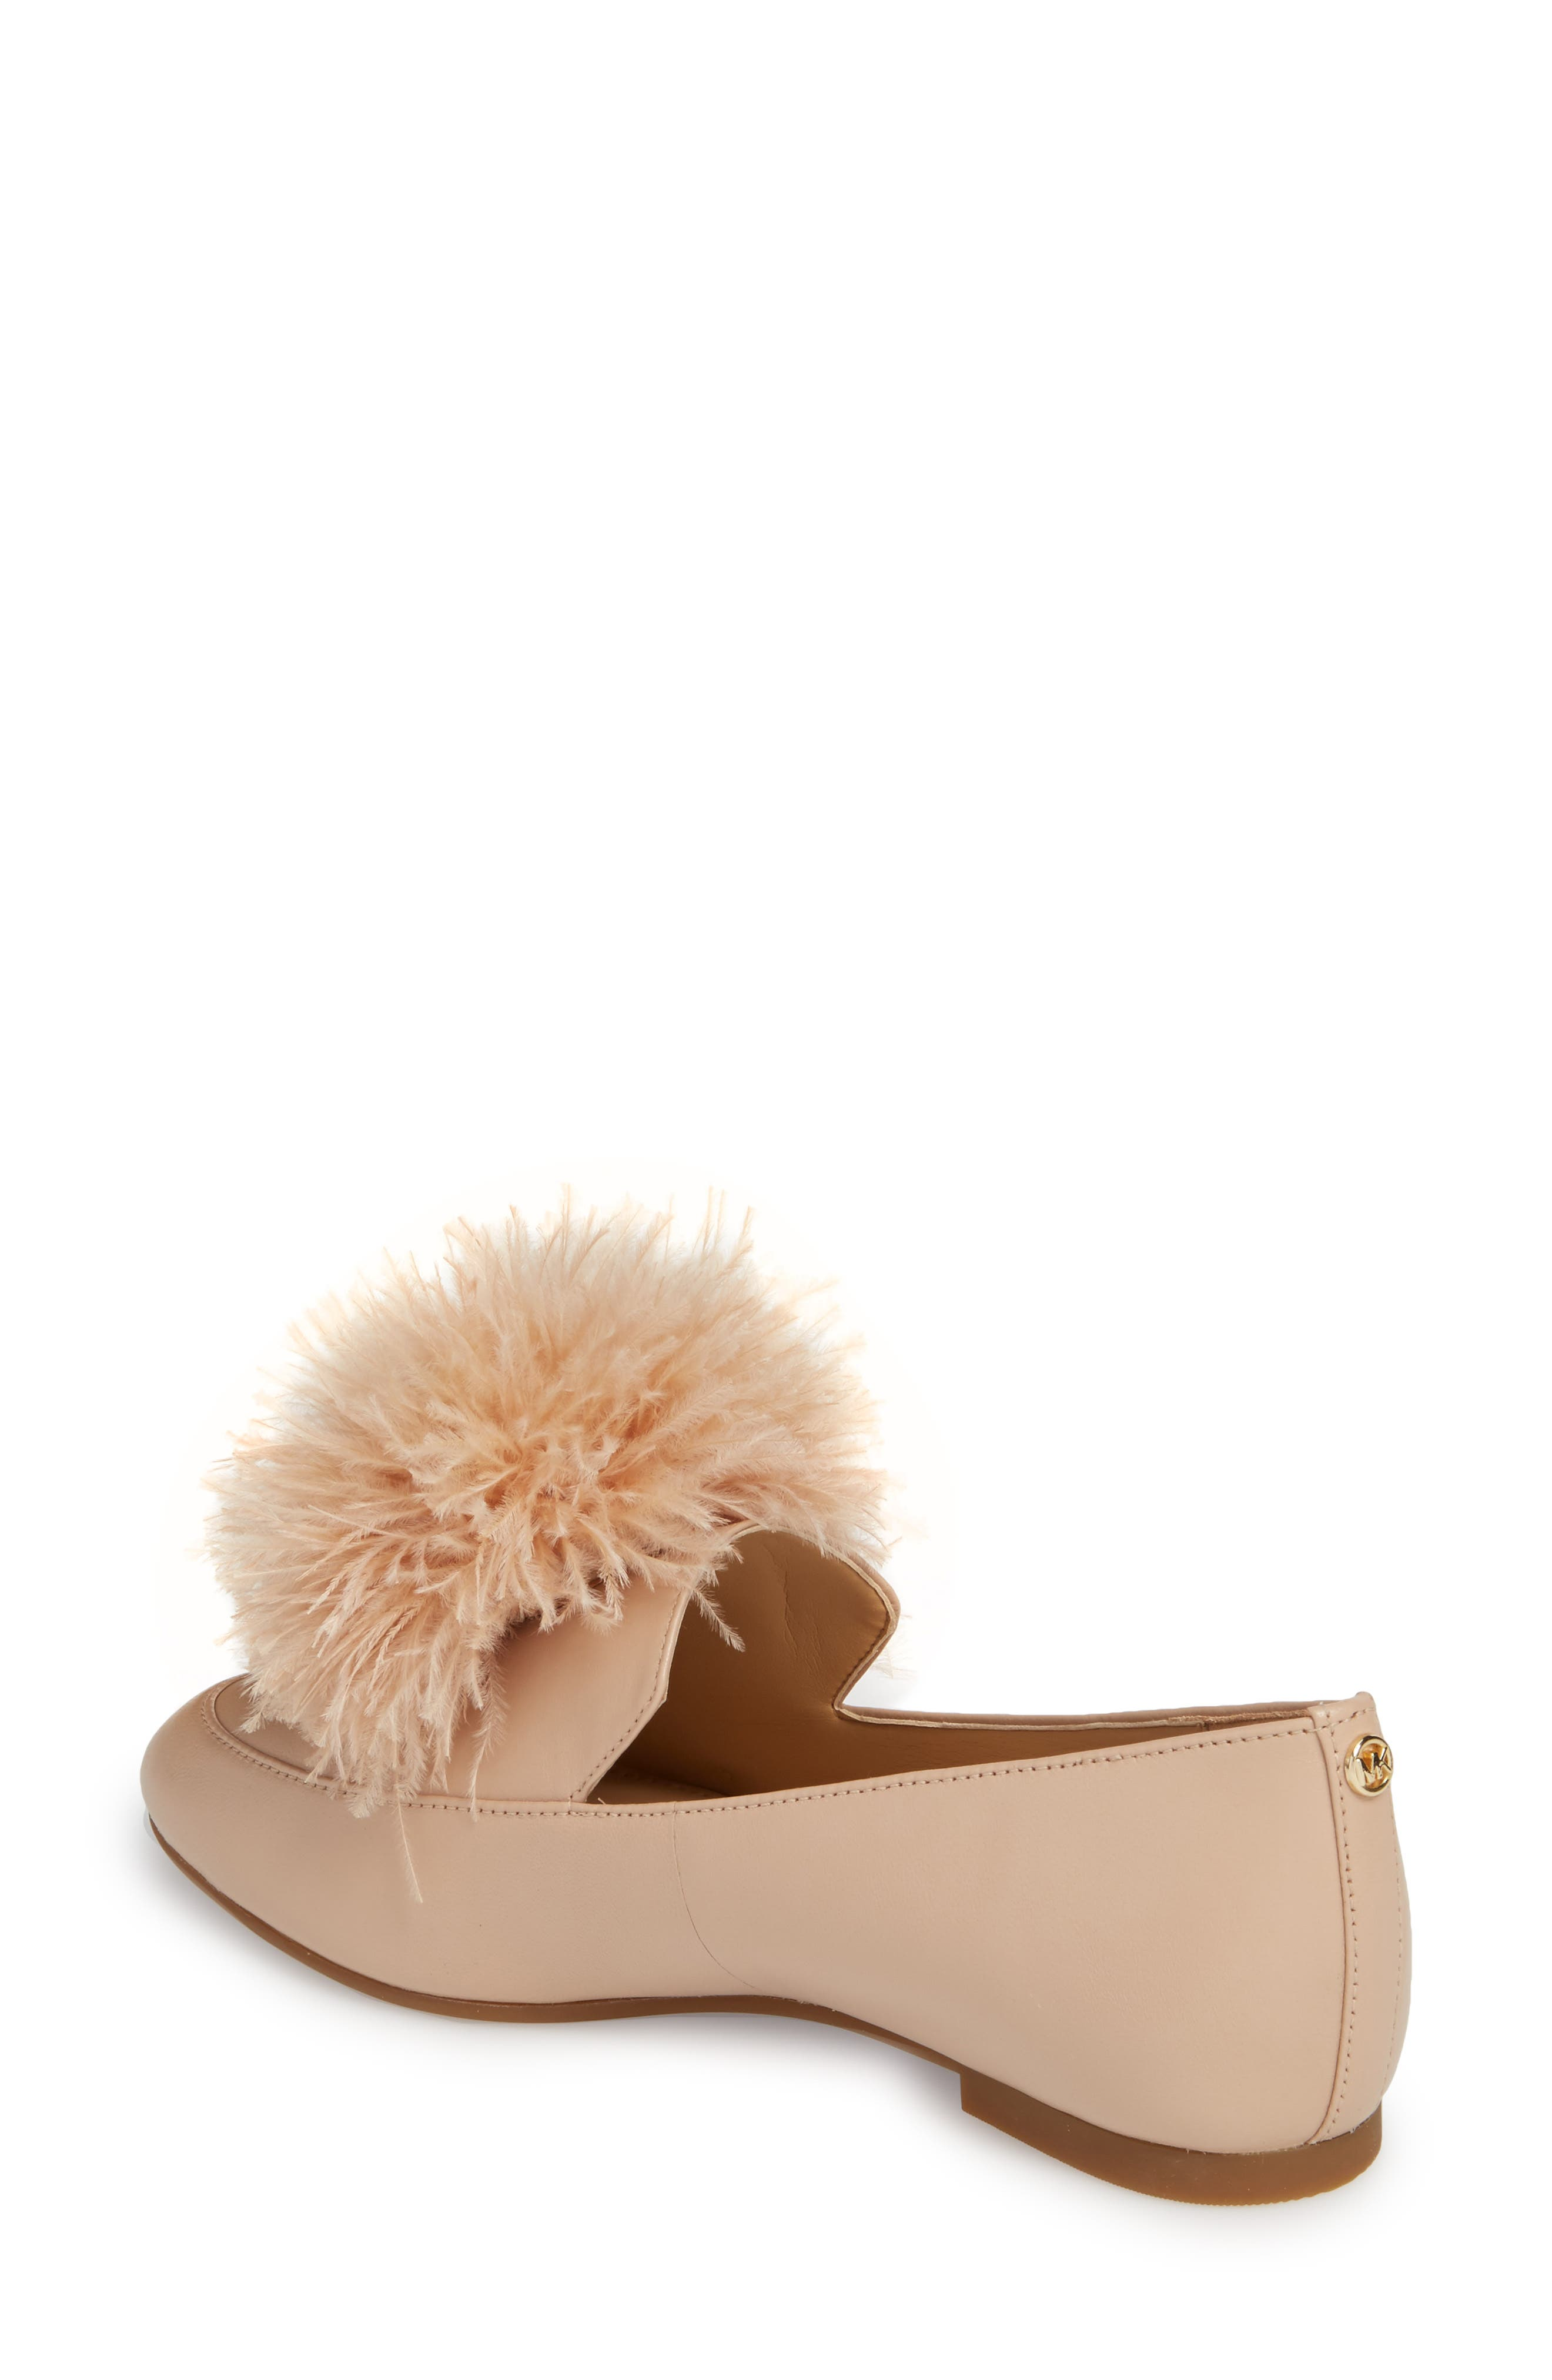 Fara Feather Pom Loafer,                             Alternate thumbnail 4, color,